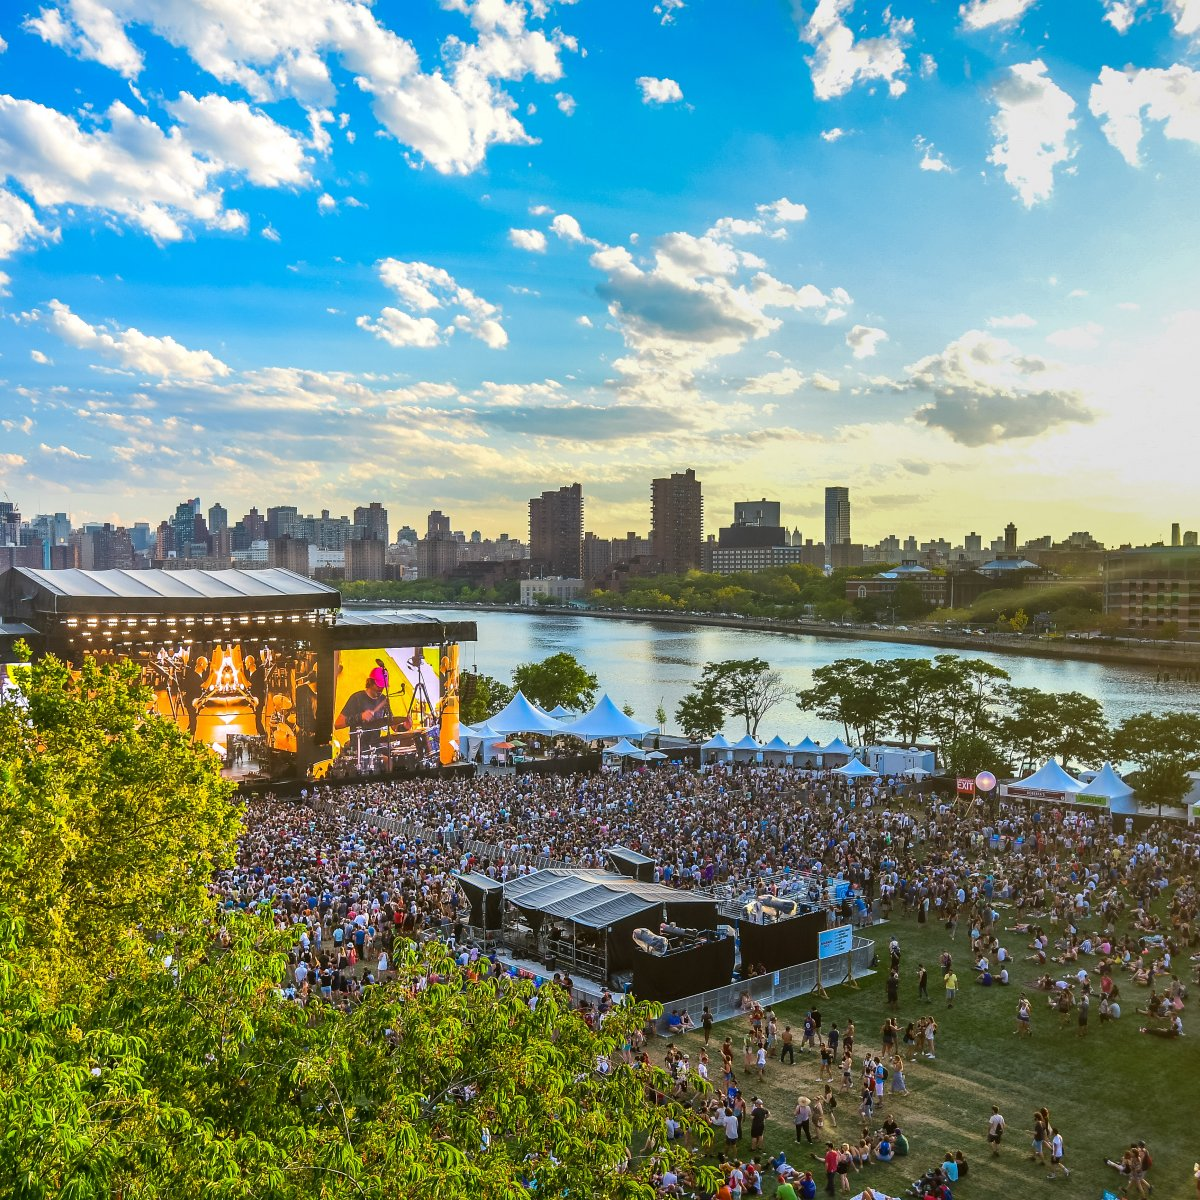 Aerial image of Panorama festival and the NY city skyline